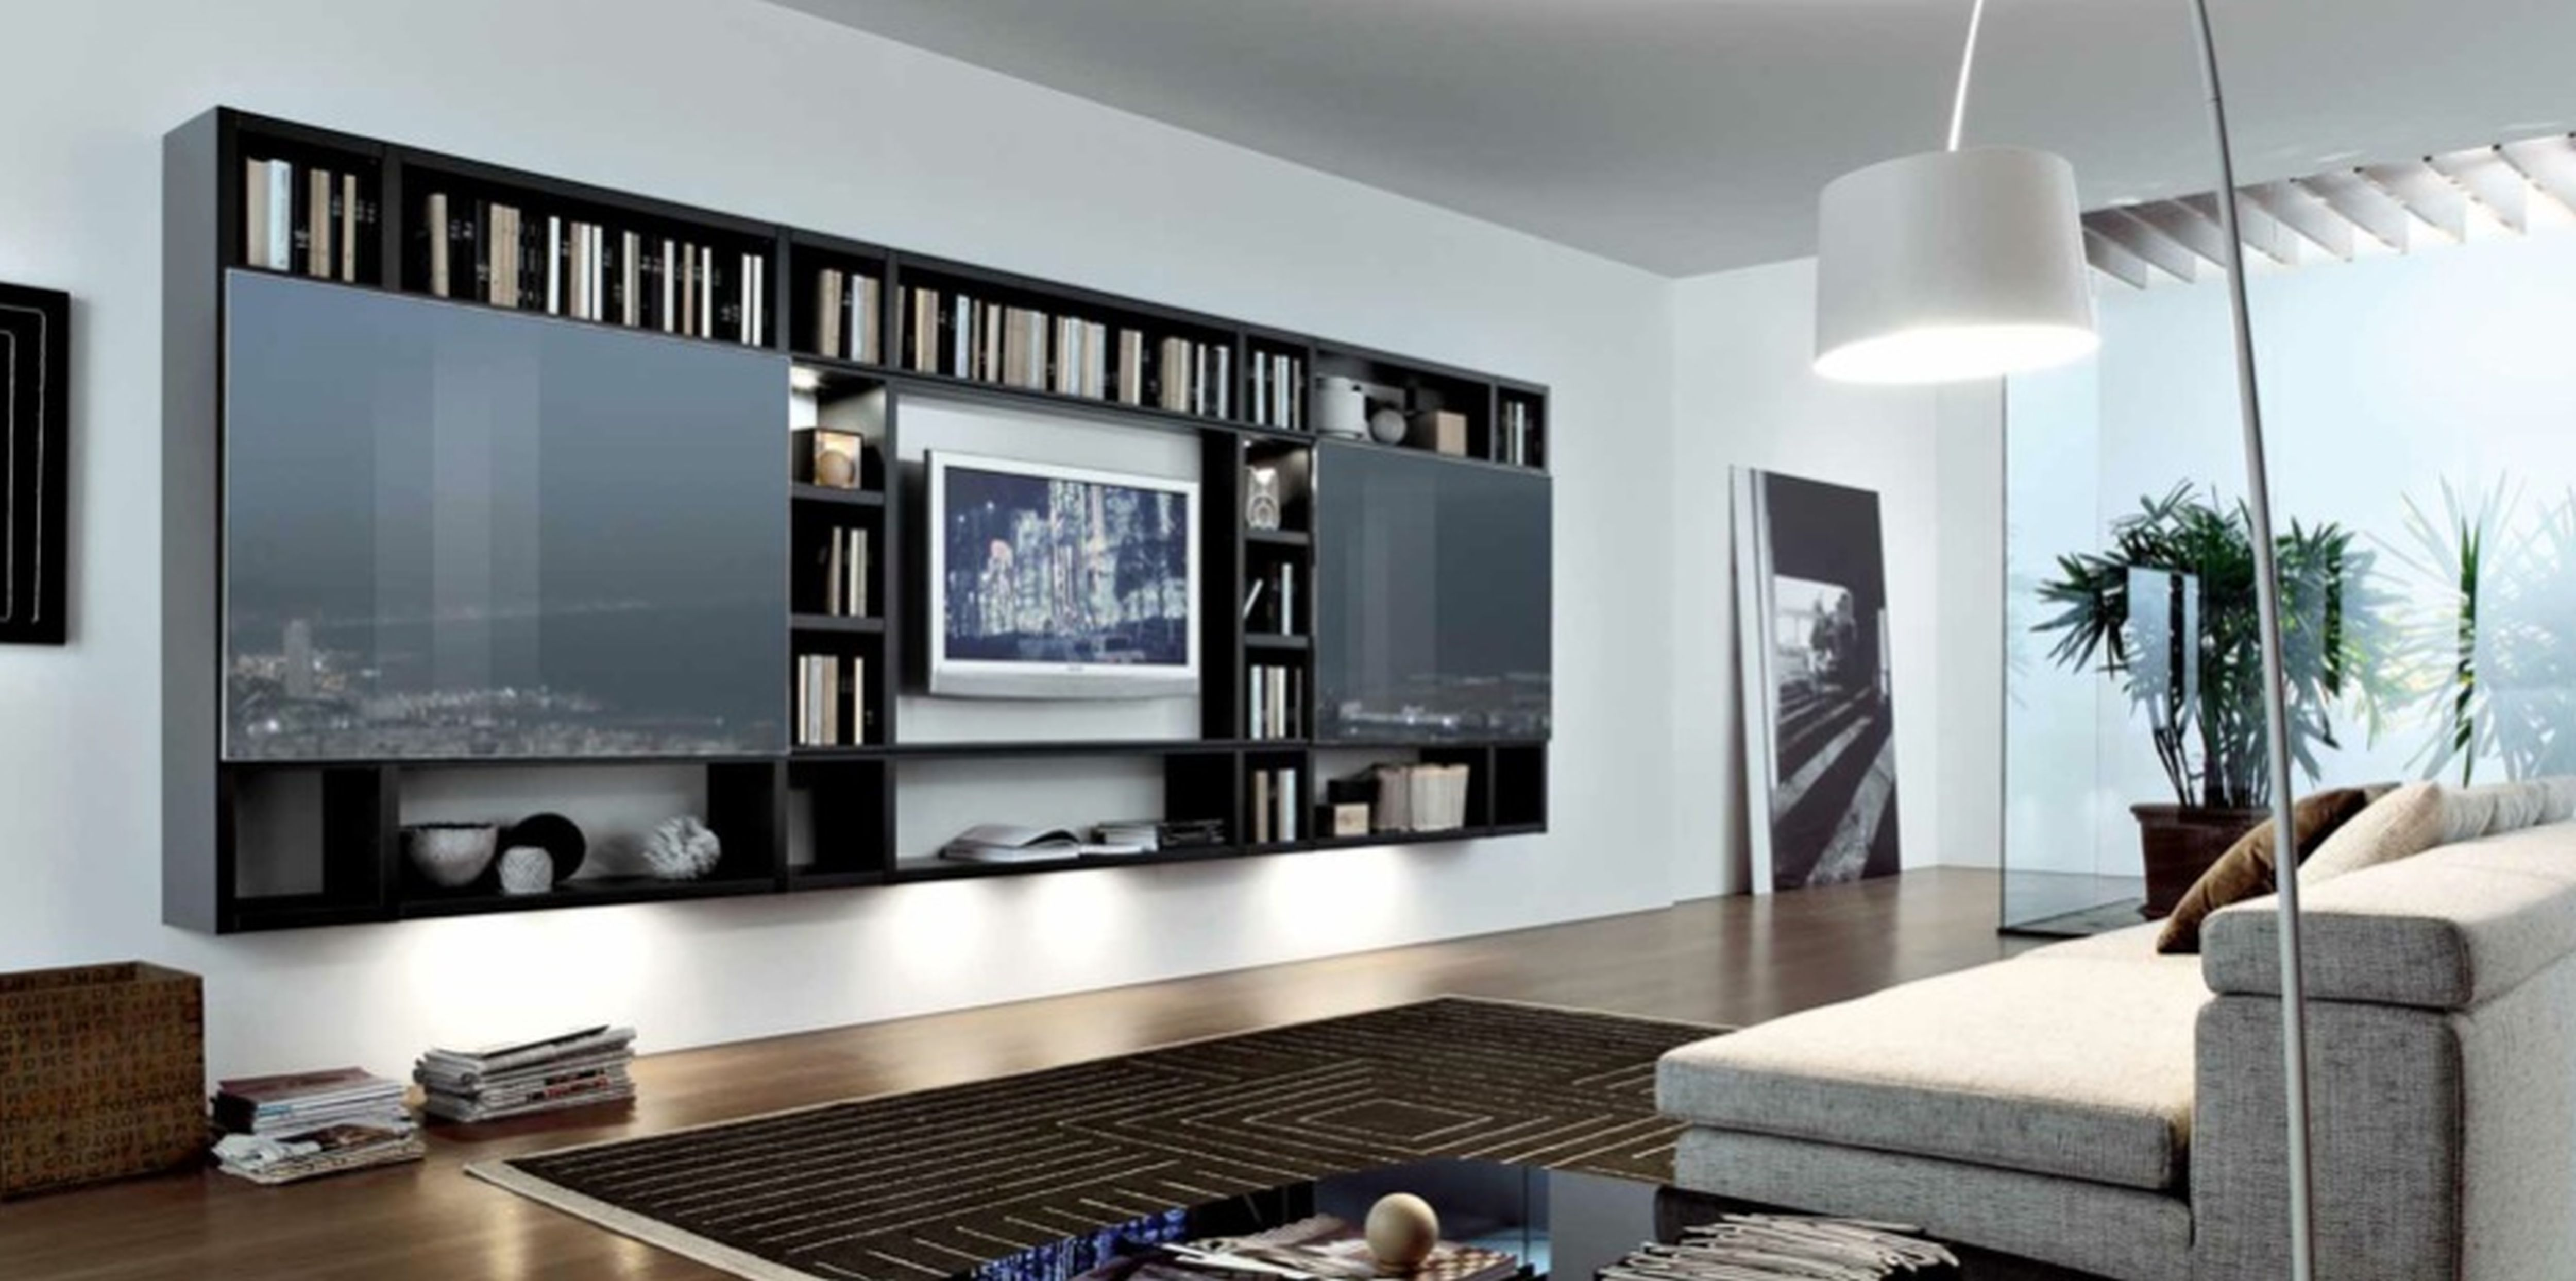 Amazing Black Wooden Wall Mount | Living room modern, Unique ...